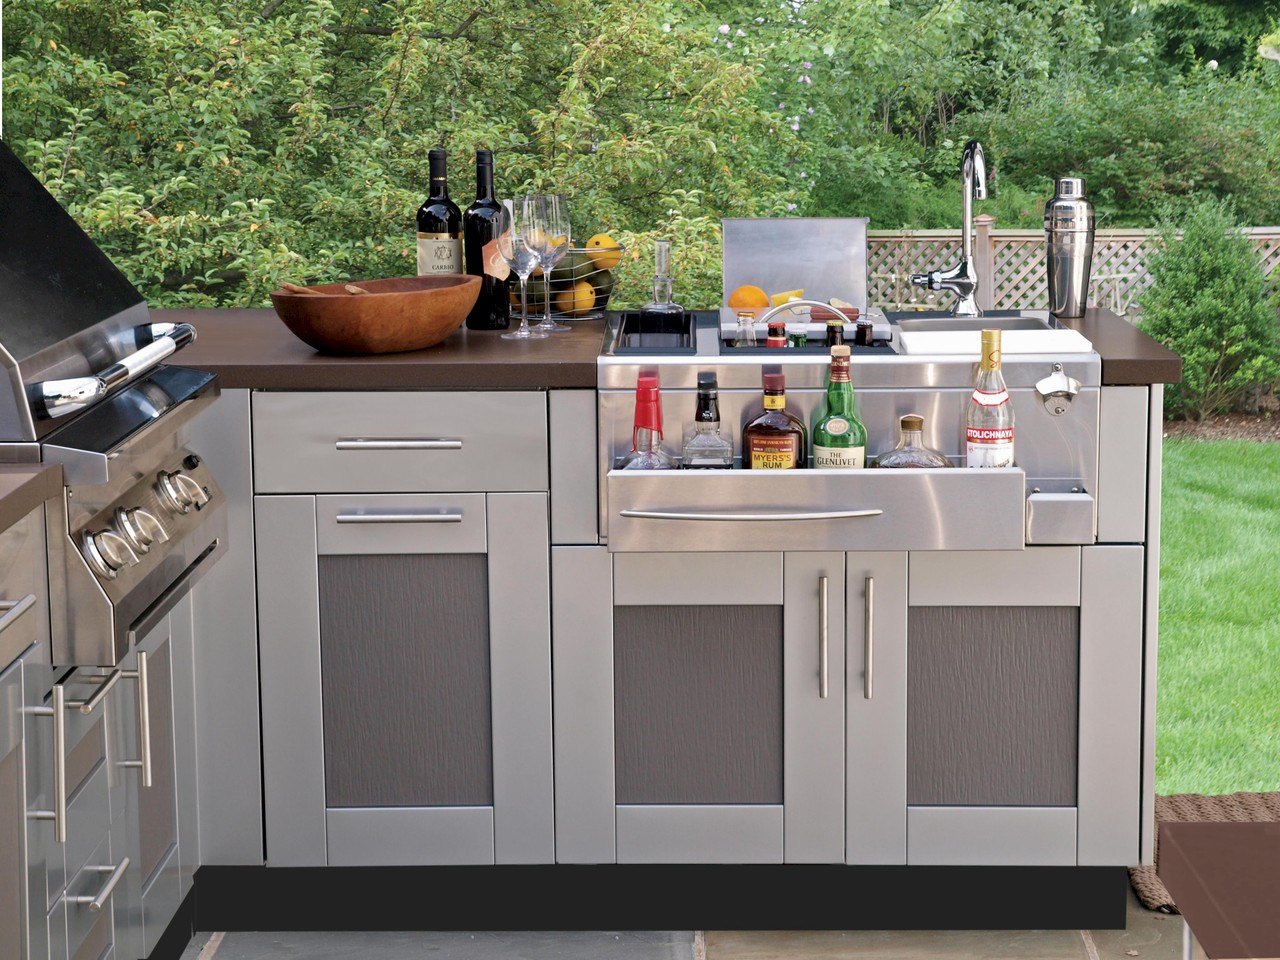 Bringing The Inside Out Outdoor Kitchen Cabinetry 6 Week Summer Series Redinterior